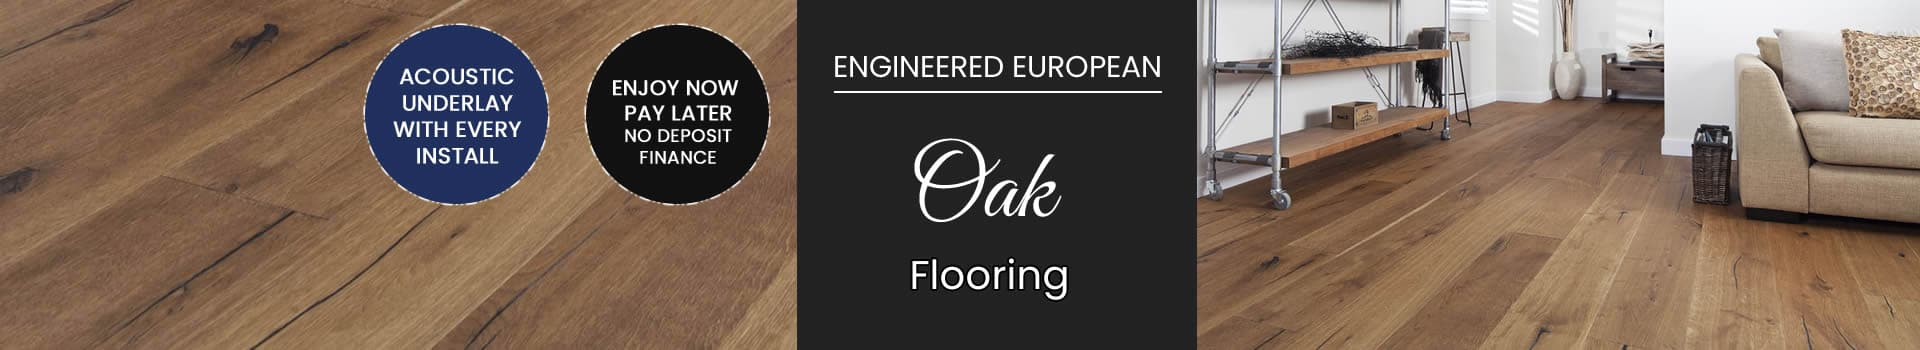 European oak floor